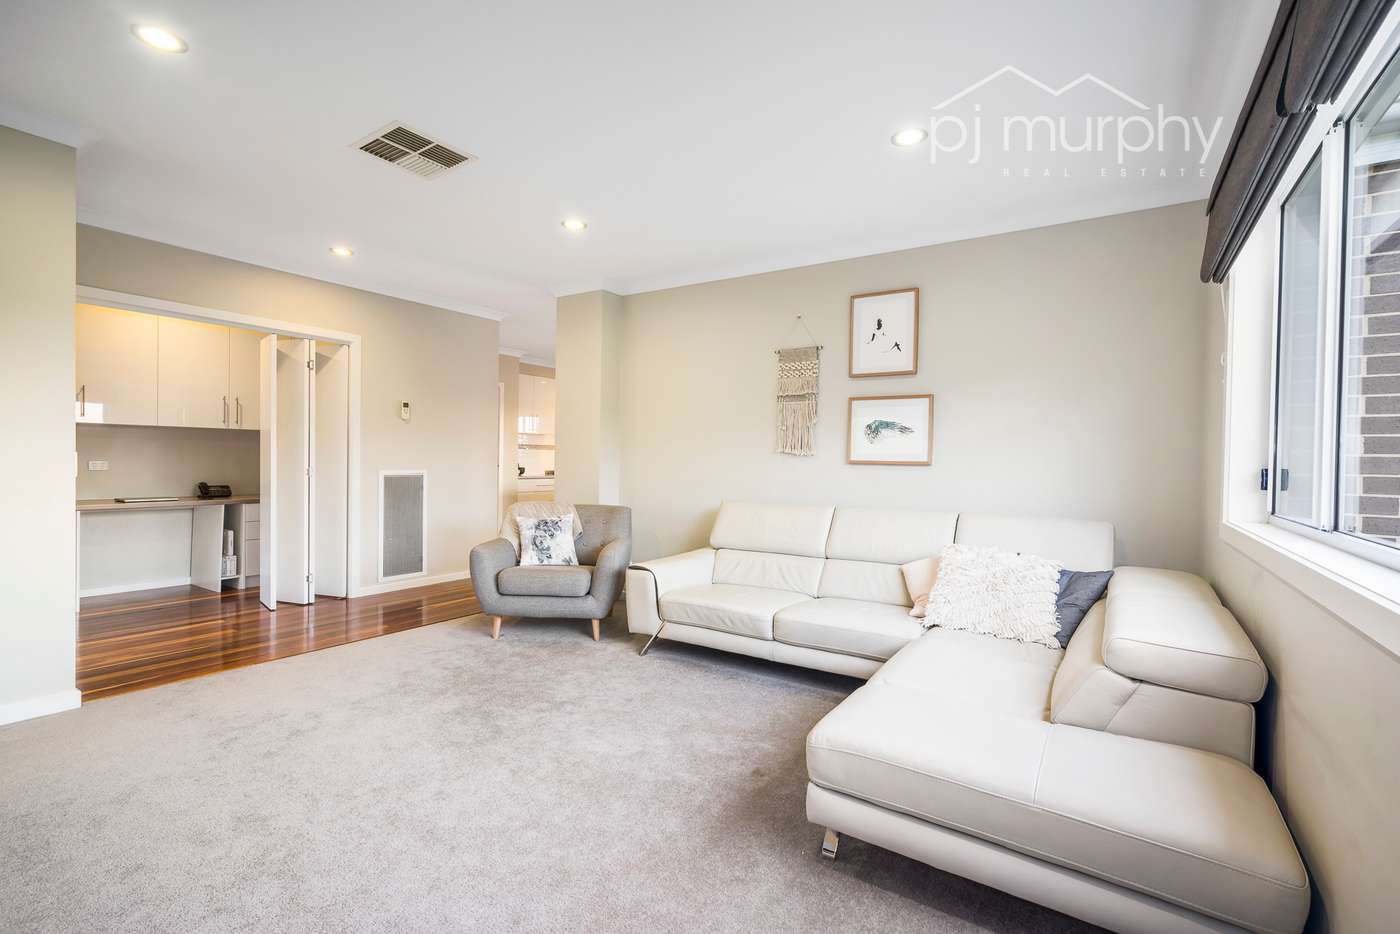 Sixth view of Homely house listing, 5 Ahern Court, Wodonga VIC 3690